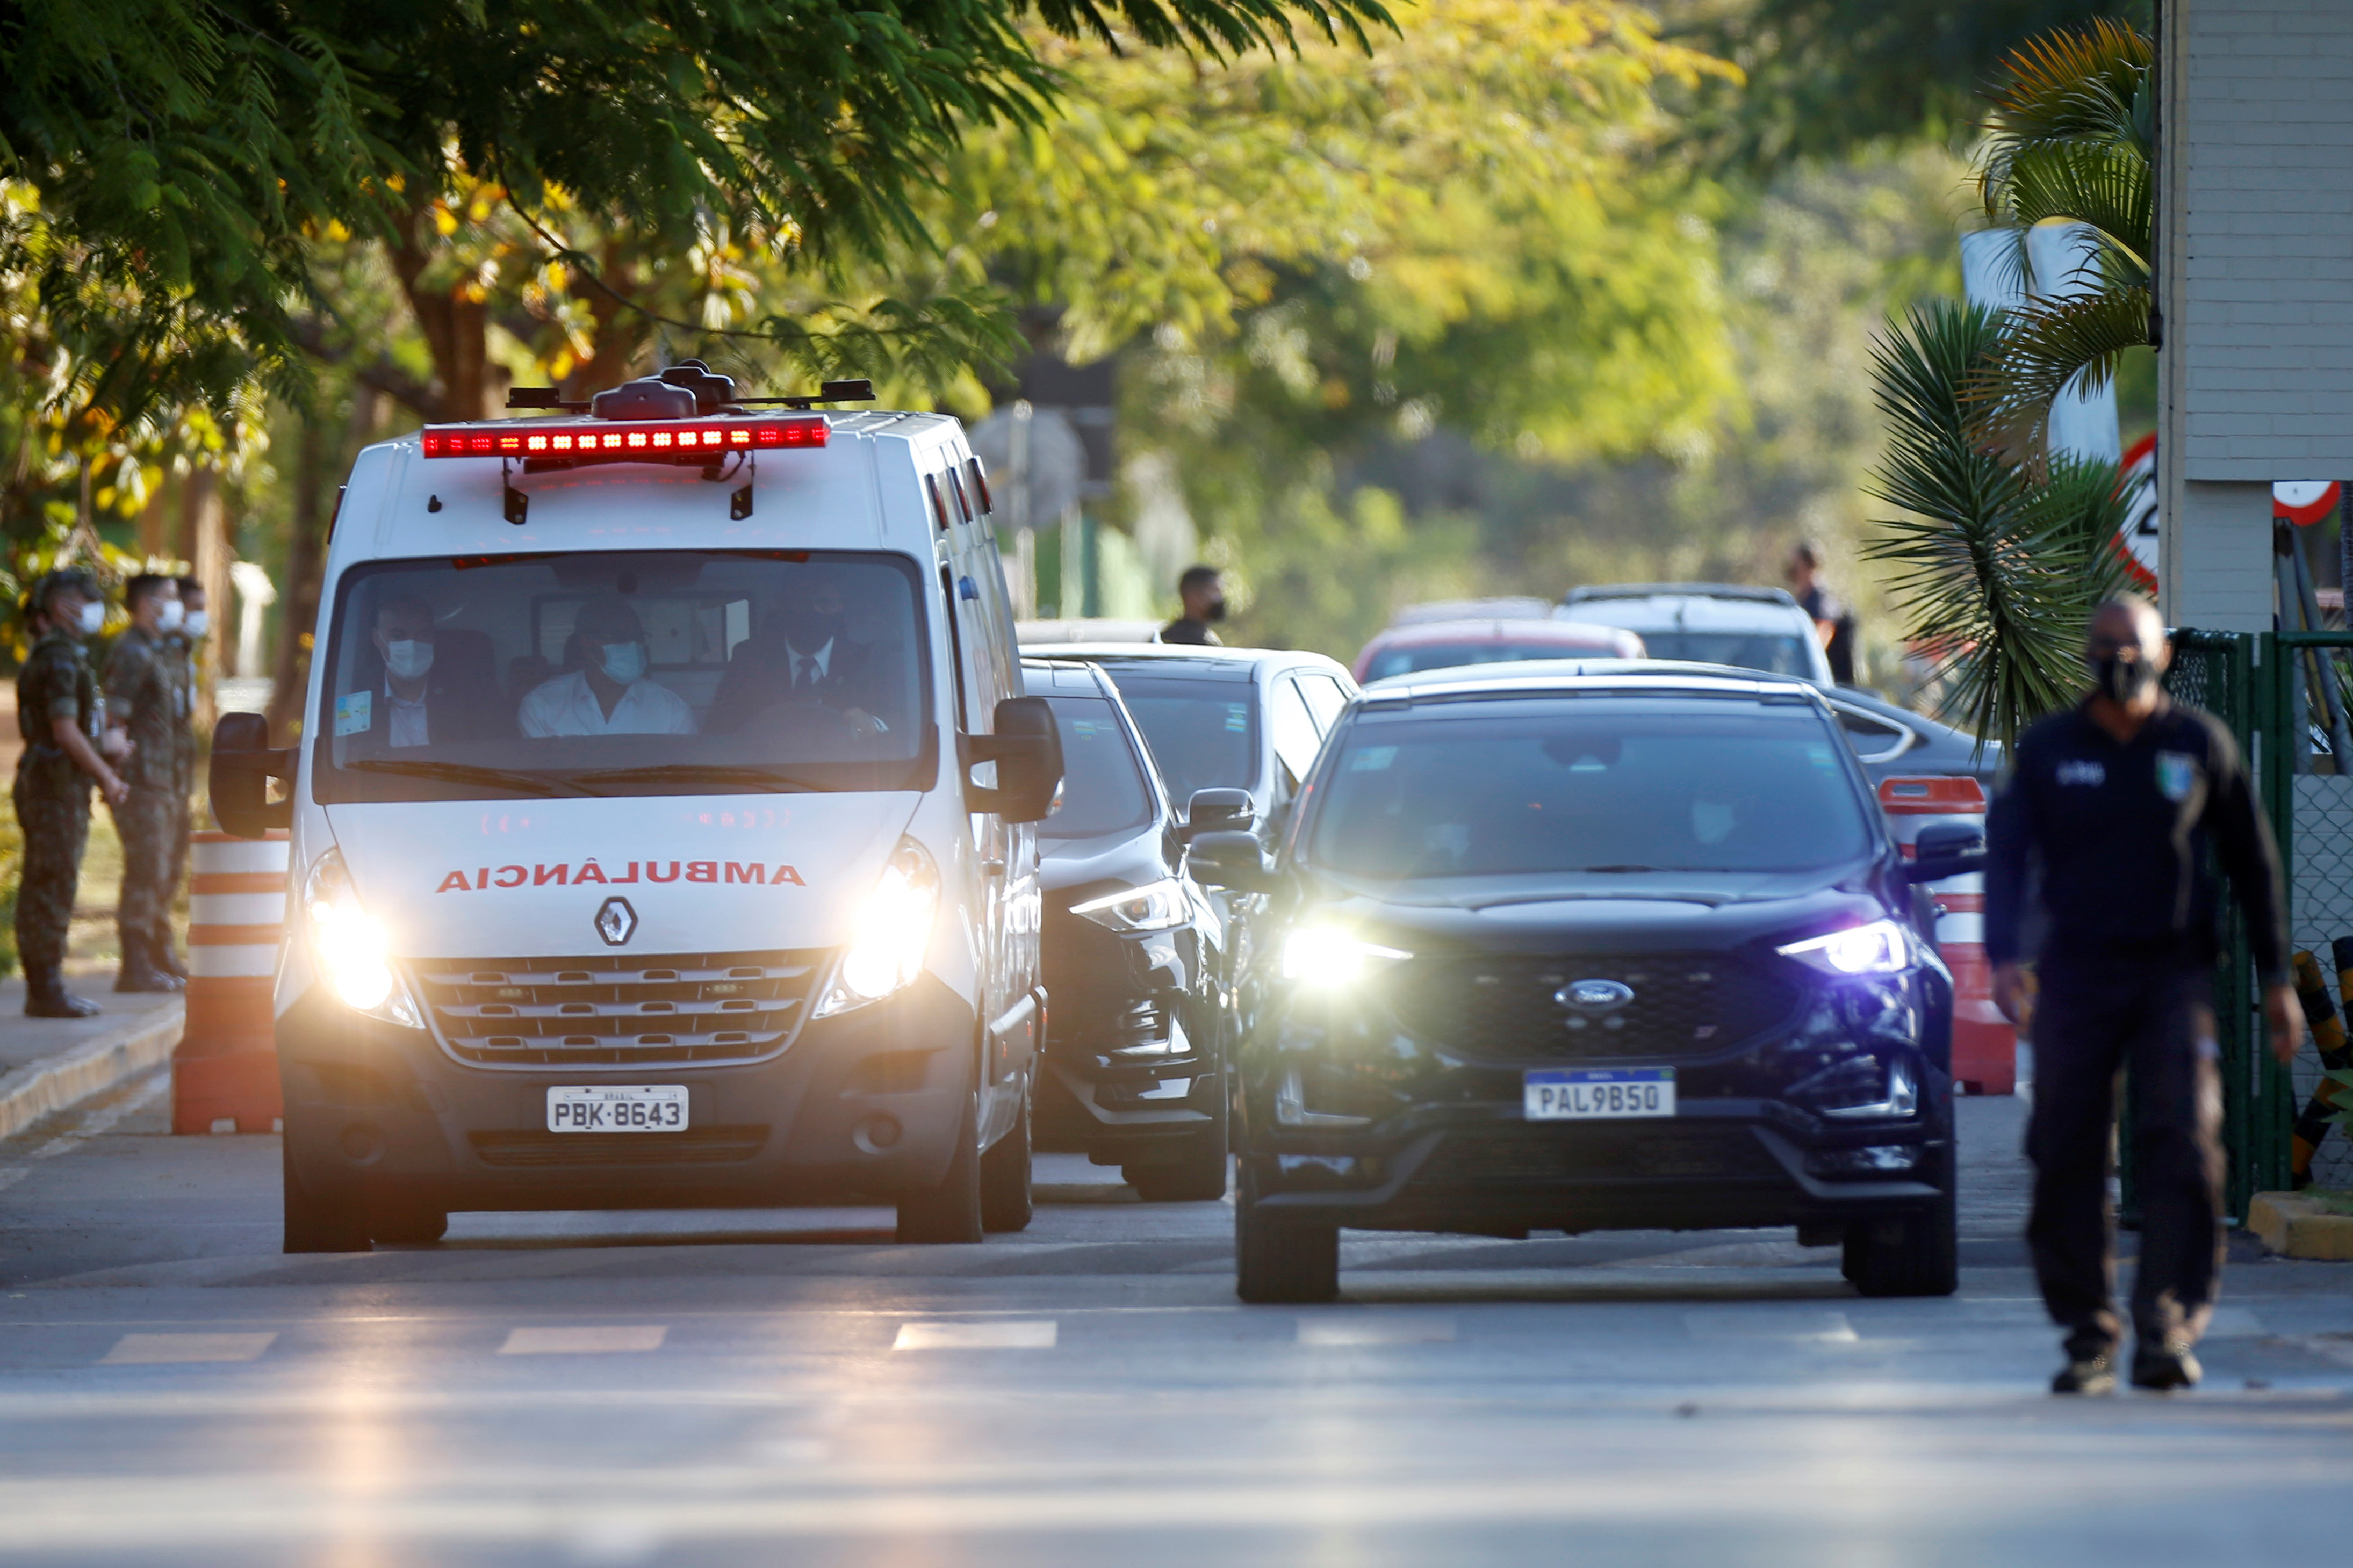 A presidential convoy with an ambulance transporting Brazil's President Jair Bolsonaro leaves the armed forces hospital (HFA) in Brasilia, Brazil July 14, 2021. REUTERS/Adriano Machado